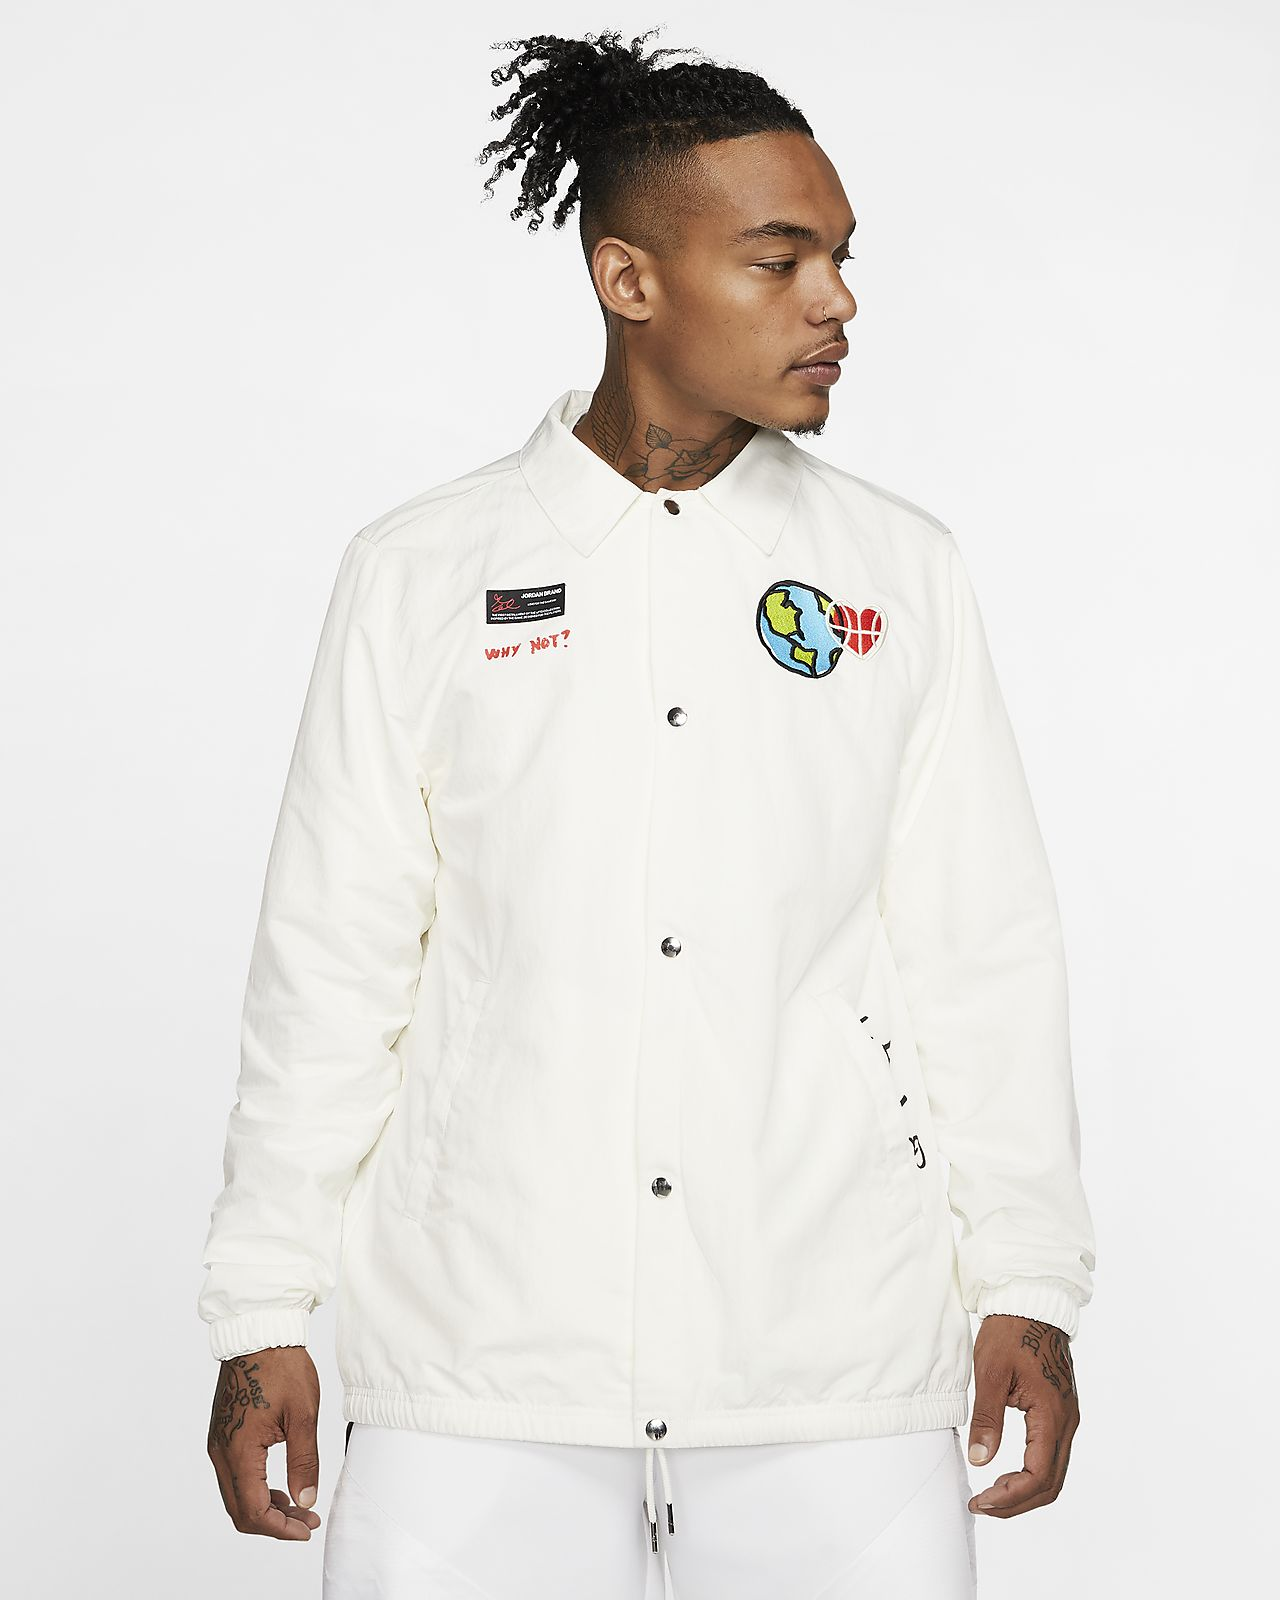 MENS AND BOYS WHITE S.B JACKETS